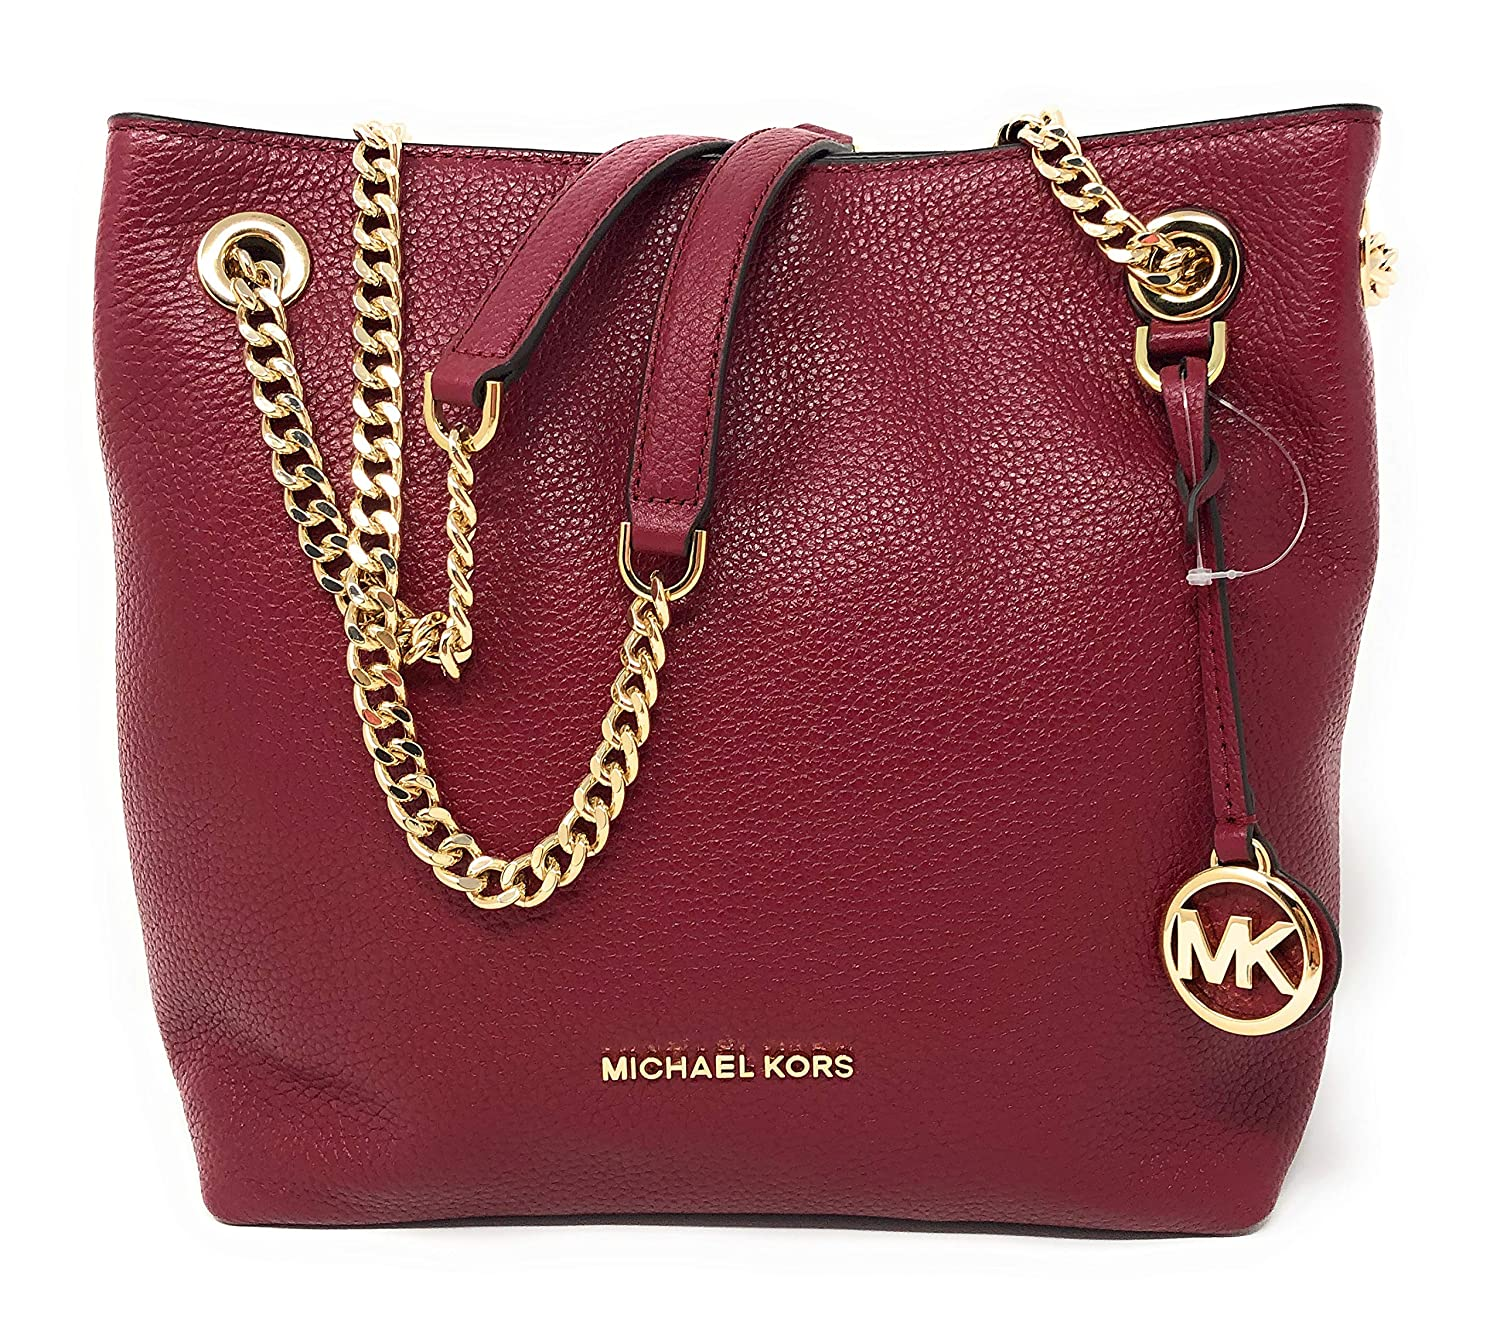 Amazon.com  Michael Kors Jet Set Chain Medium Leather Shoulder Tote Bag in  Mulberry  Clothing e1000464bf9e9